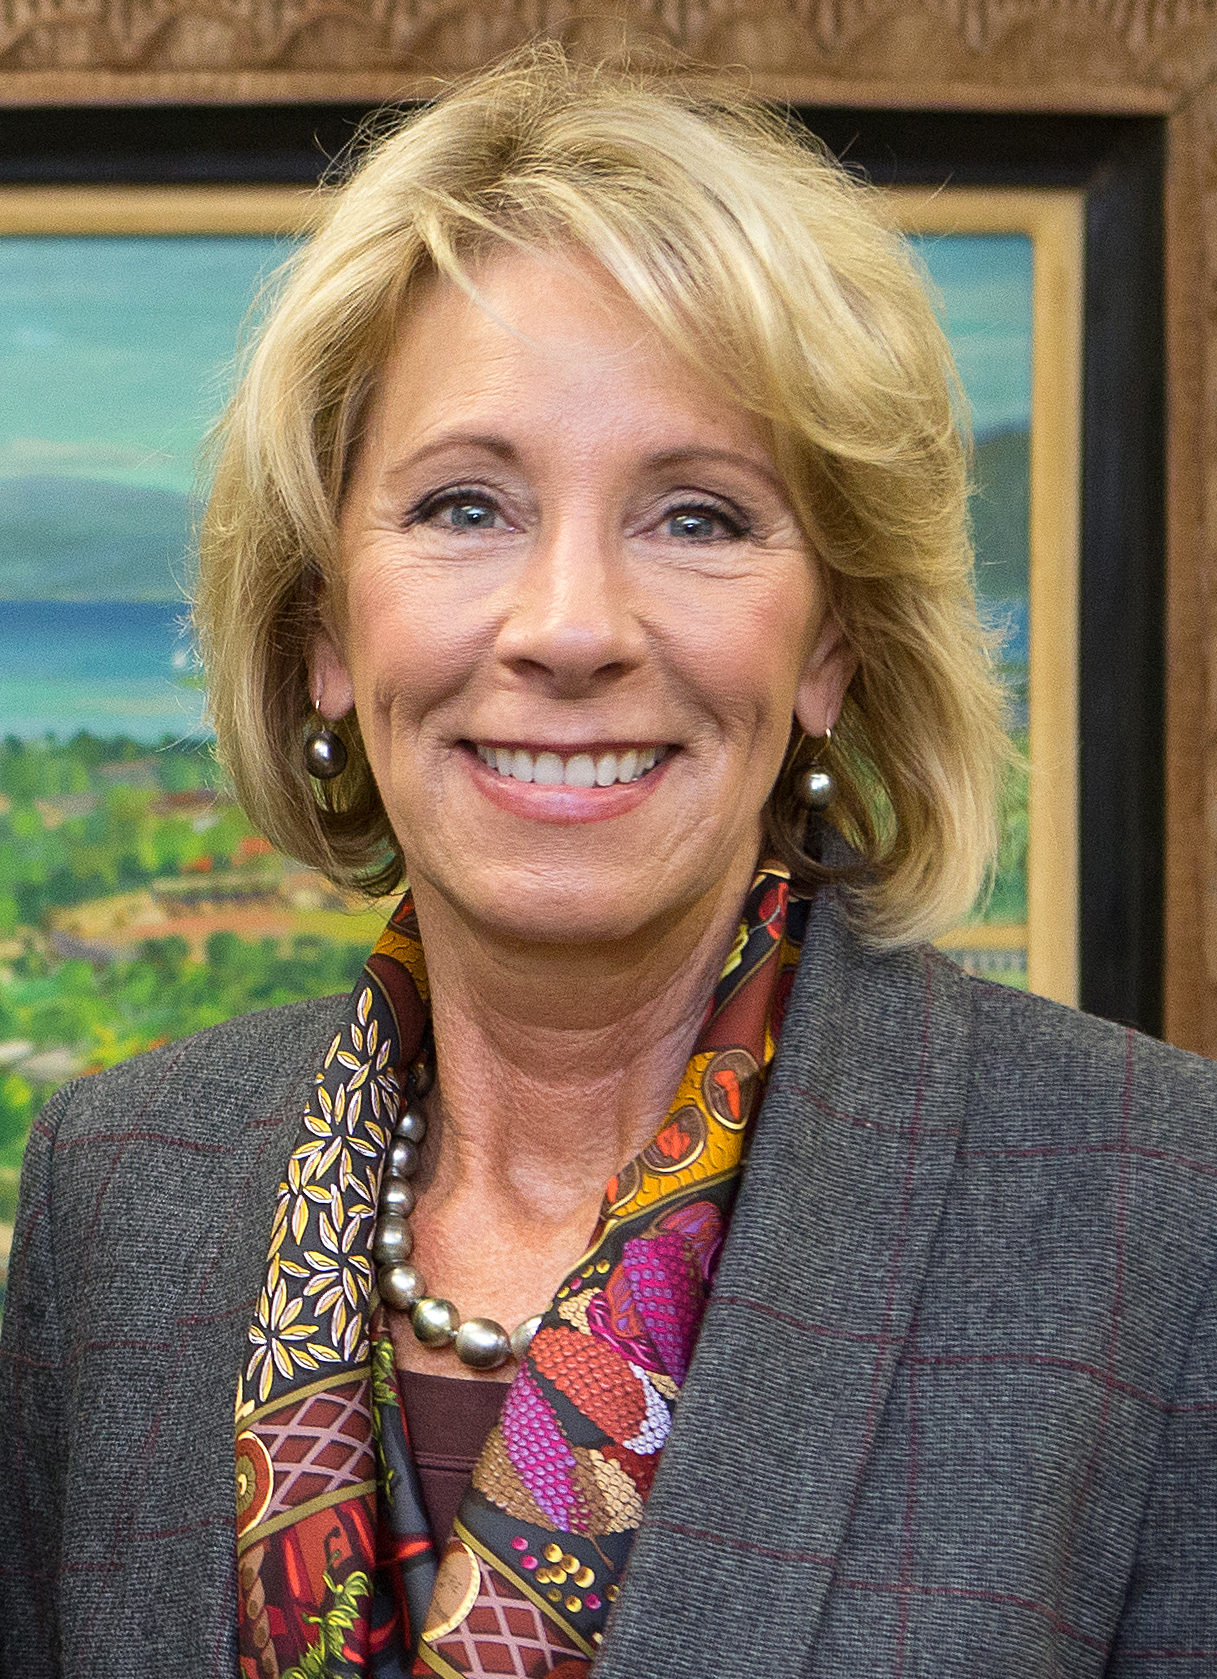 The 60-year old daughter of father Edgar Prince and mother Elsa Zwiep Betsy DeVos in 2018 photo. Betsy DeVos earned a 0.2 million dollar salary - leaving the net worth at 5.1 million in 2018